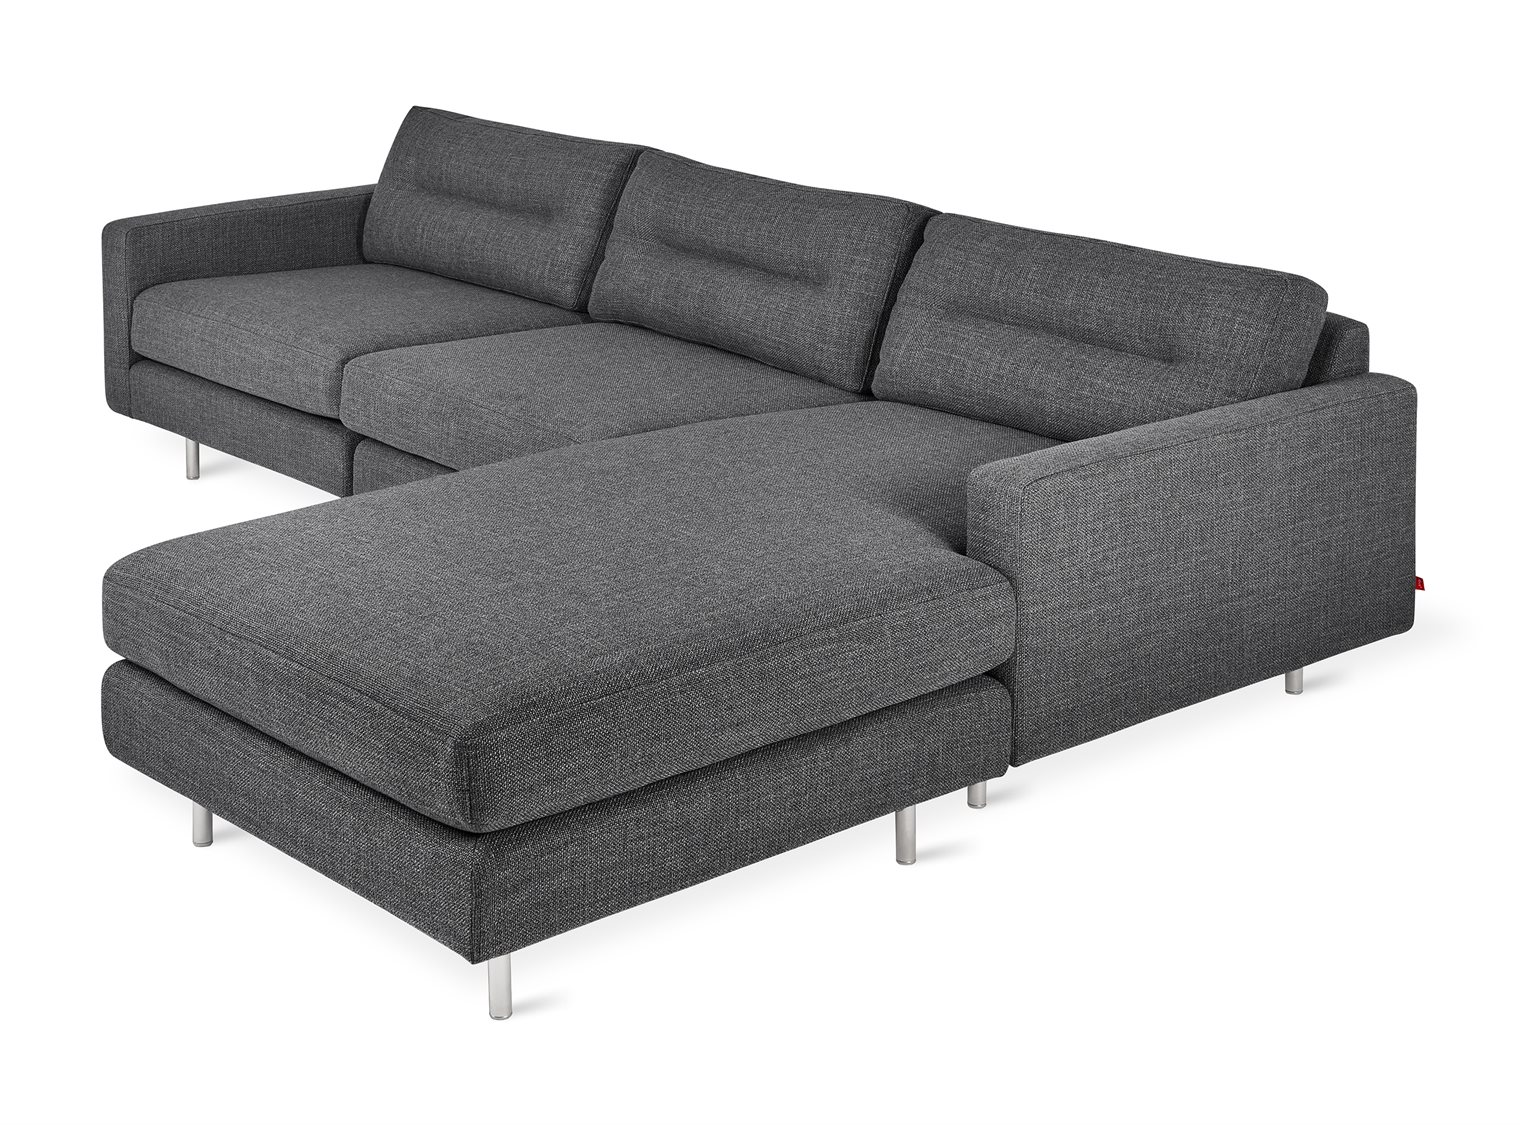 Fine Gus Modern Logan Andorra Pewter Sectional Sofa Pdpeps Interior Chair Design Pdpepsorg